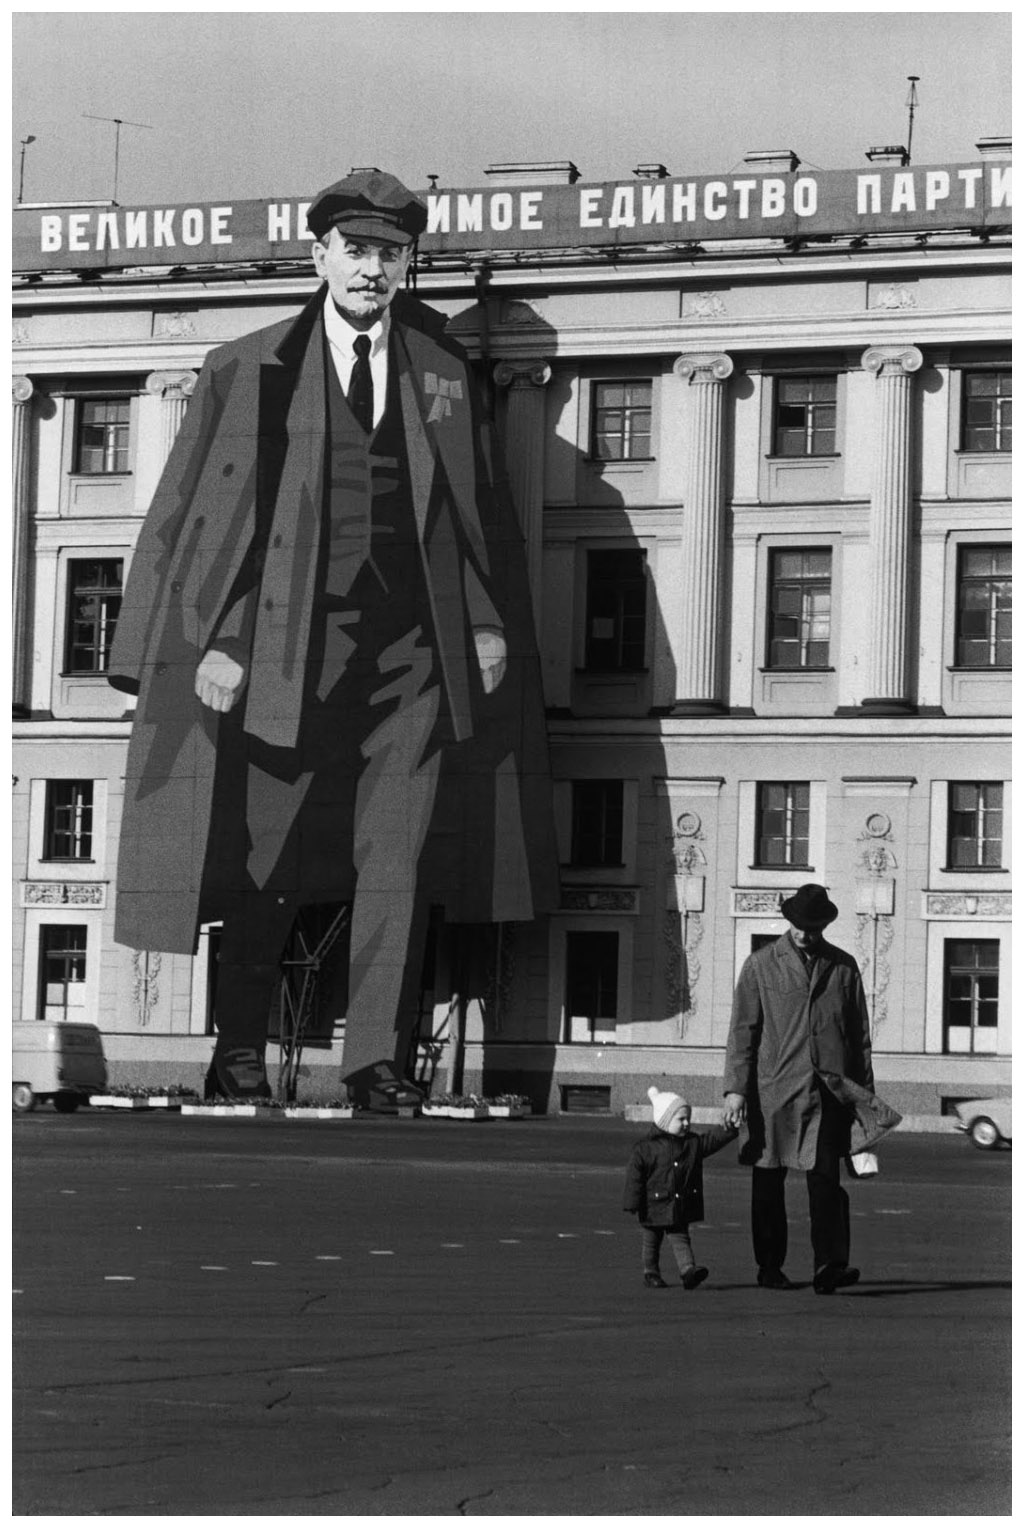 """henri cartier bresson Taking pride in capturing """"the decisive moment,"""" cartier-bresson intimately captured portraits and scenes, both mundane and historic, around the world in 1947, he formed magnum photos, a photography cooperative, with robert capa and others."""